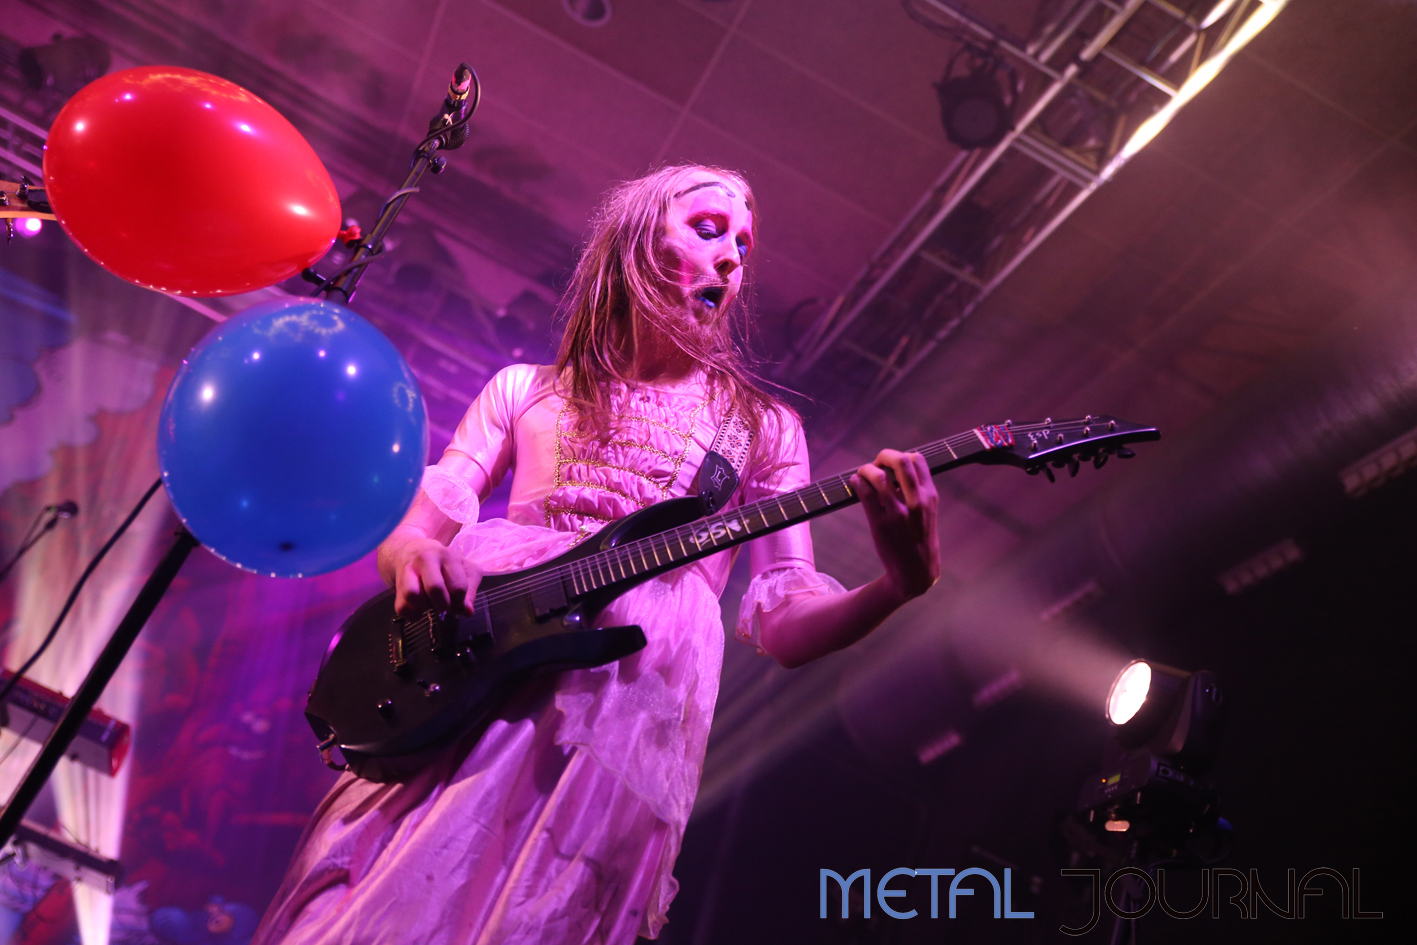 trollfest metal journal bilbao 2019 pic 7